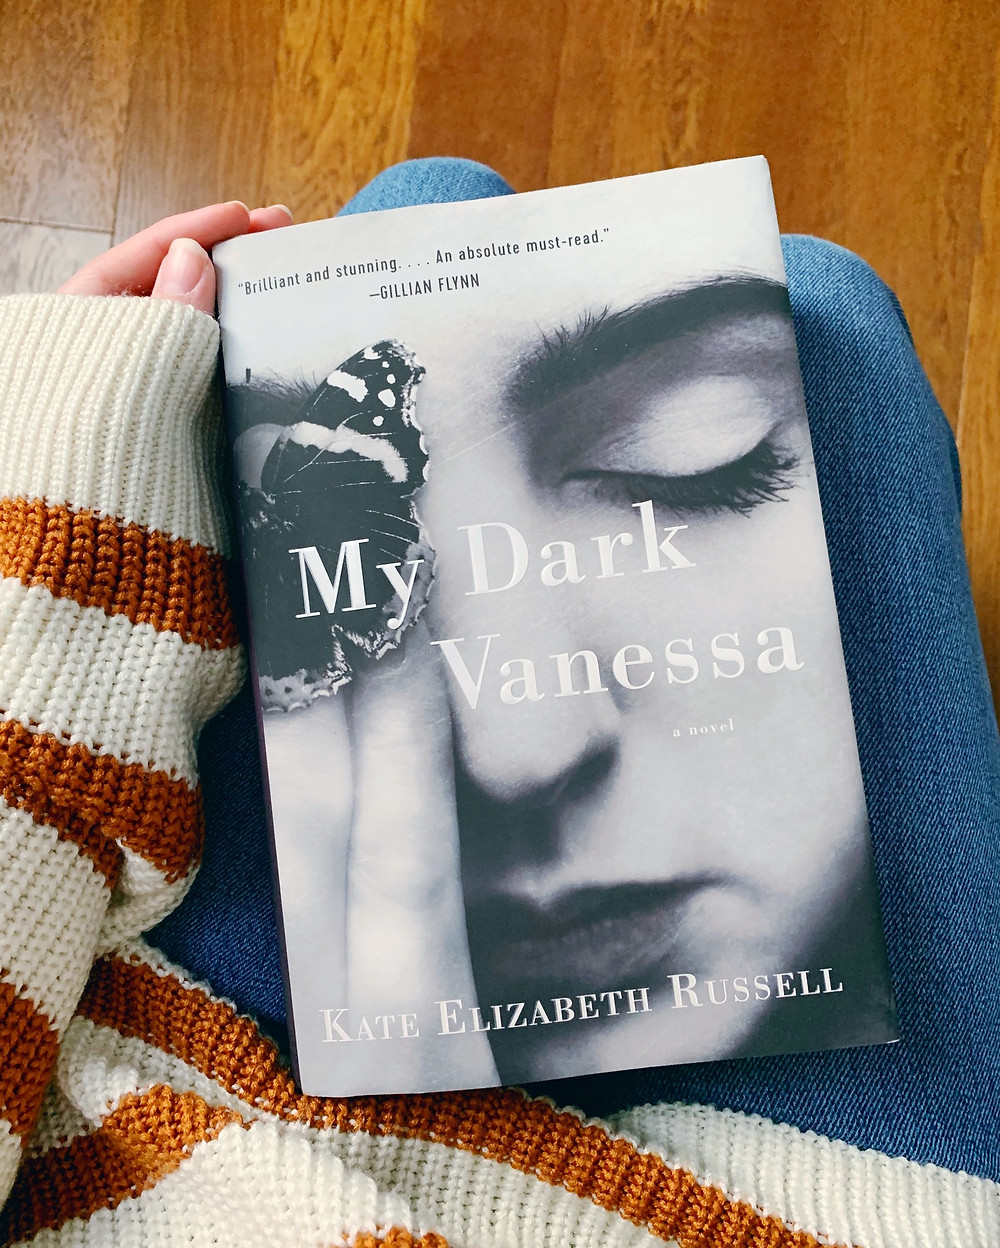 The book My Dark Vanessa sits on a lap wearing jeans, with a striped sweater'd arm holding the top corner